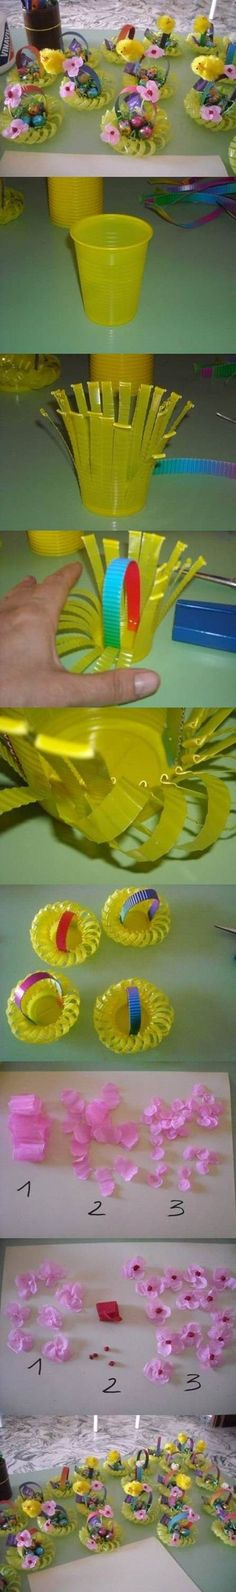 DIY Plastic Cup Easter Basket | iCreativeIdeas.com Follow Us on Facebook --> https://www.facebook.com/iCreativeIdeas